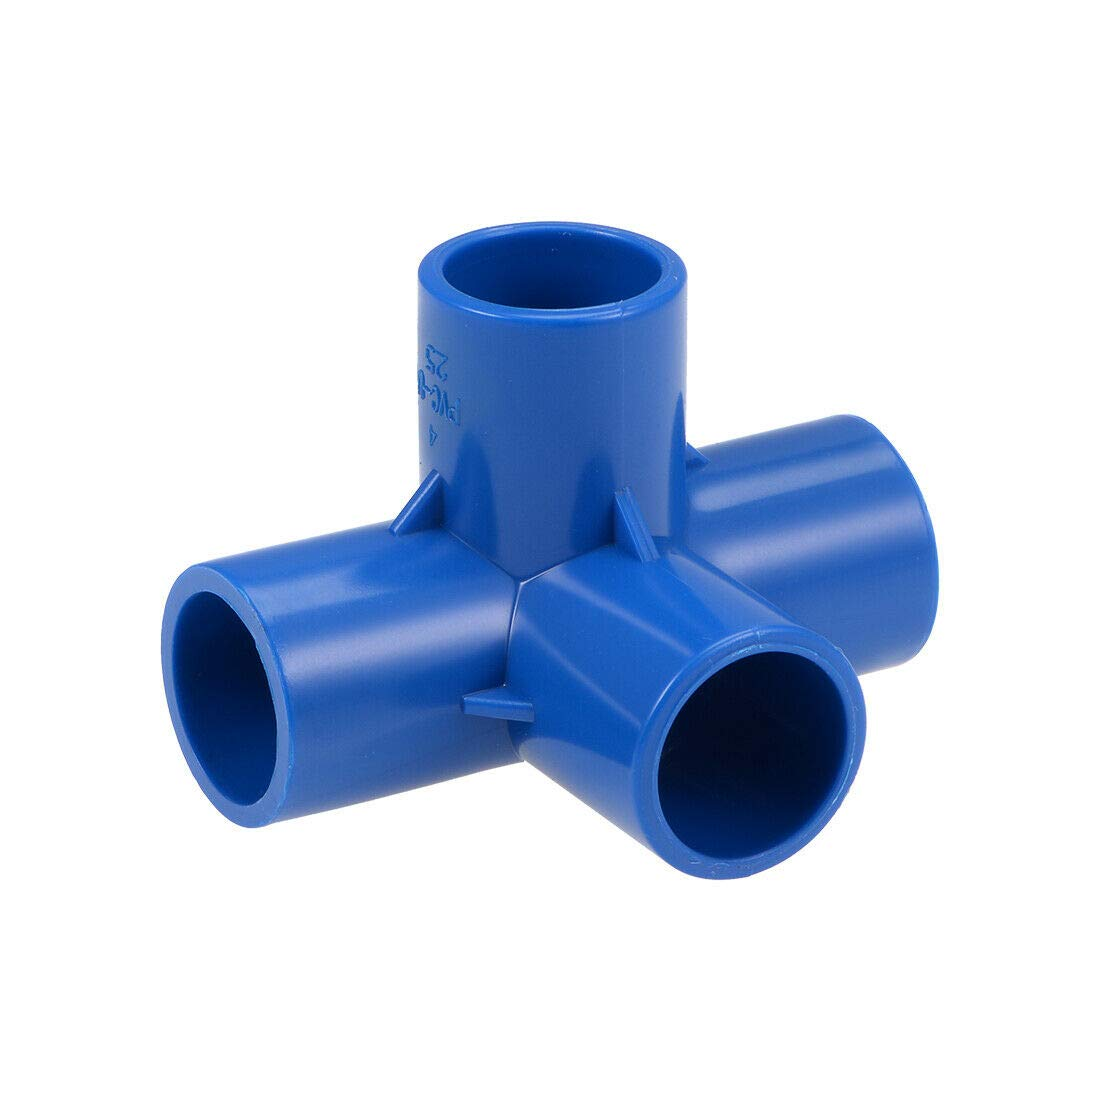 Pipe Fittings All stores are sold 4 Way 25mm Tee - Furniture Elbow trend rank PVC Fitting